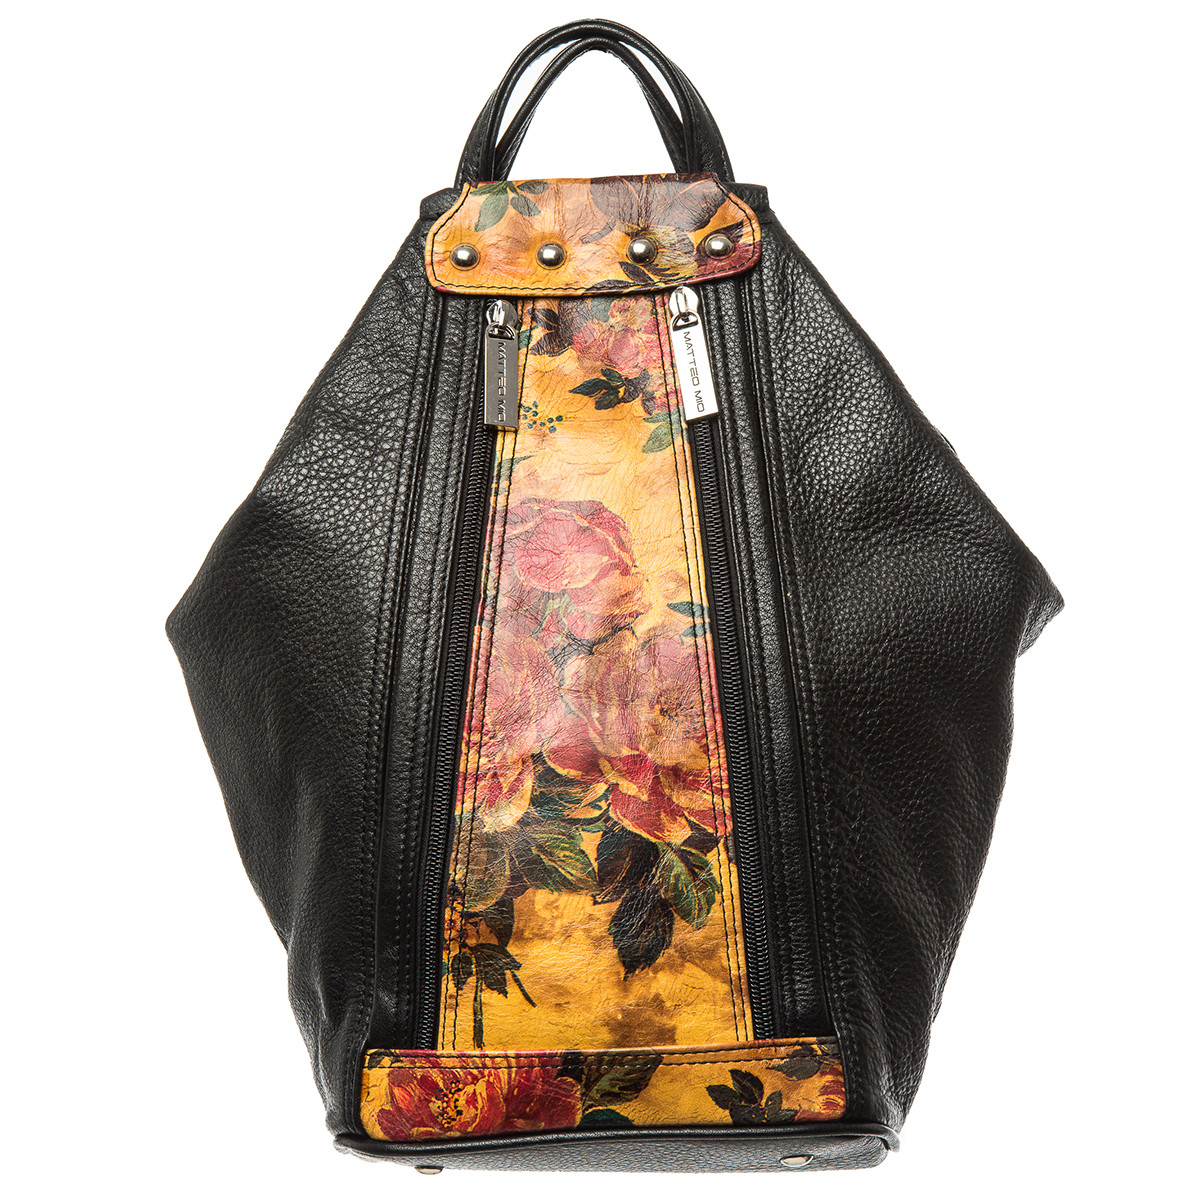 Mariano black and floral black